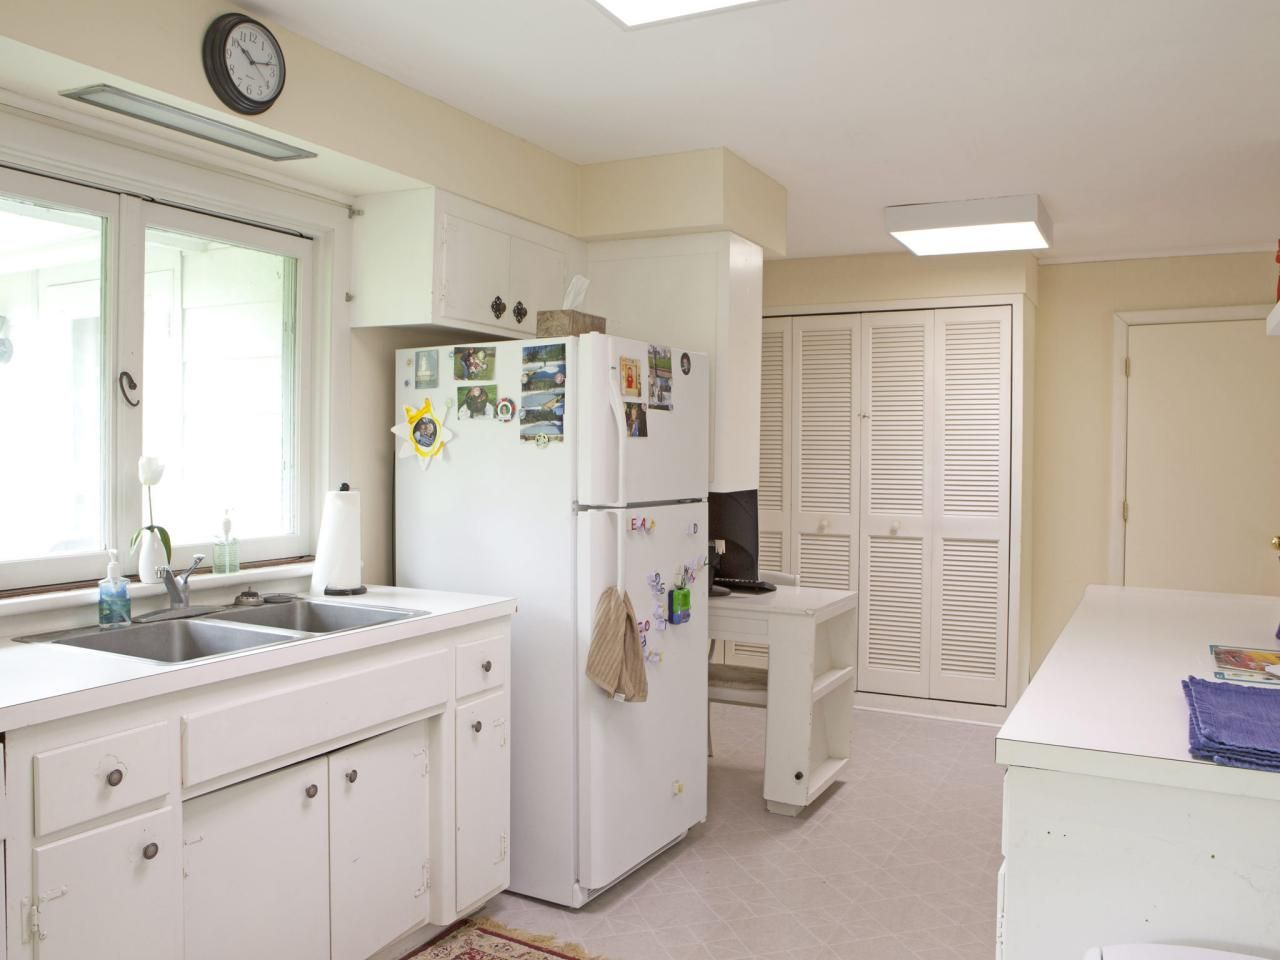 Kitchen CabiGlass Doors - http://www.kittencarcare.info/kitchen ...